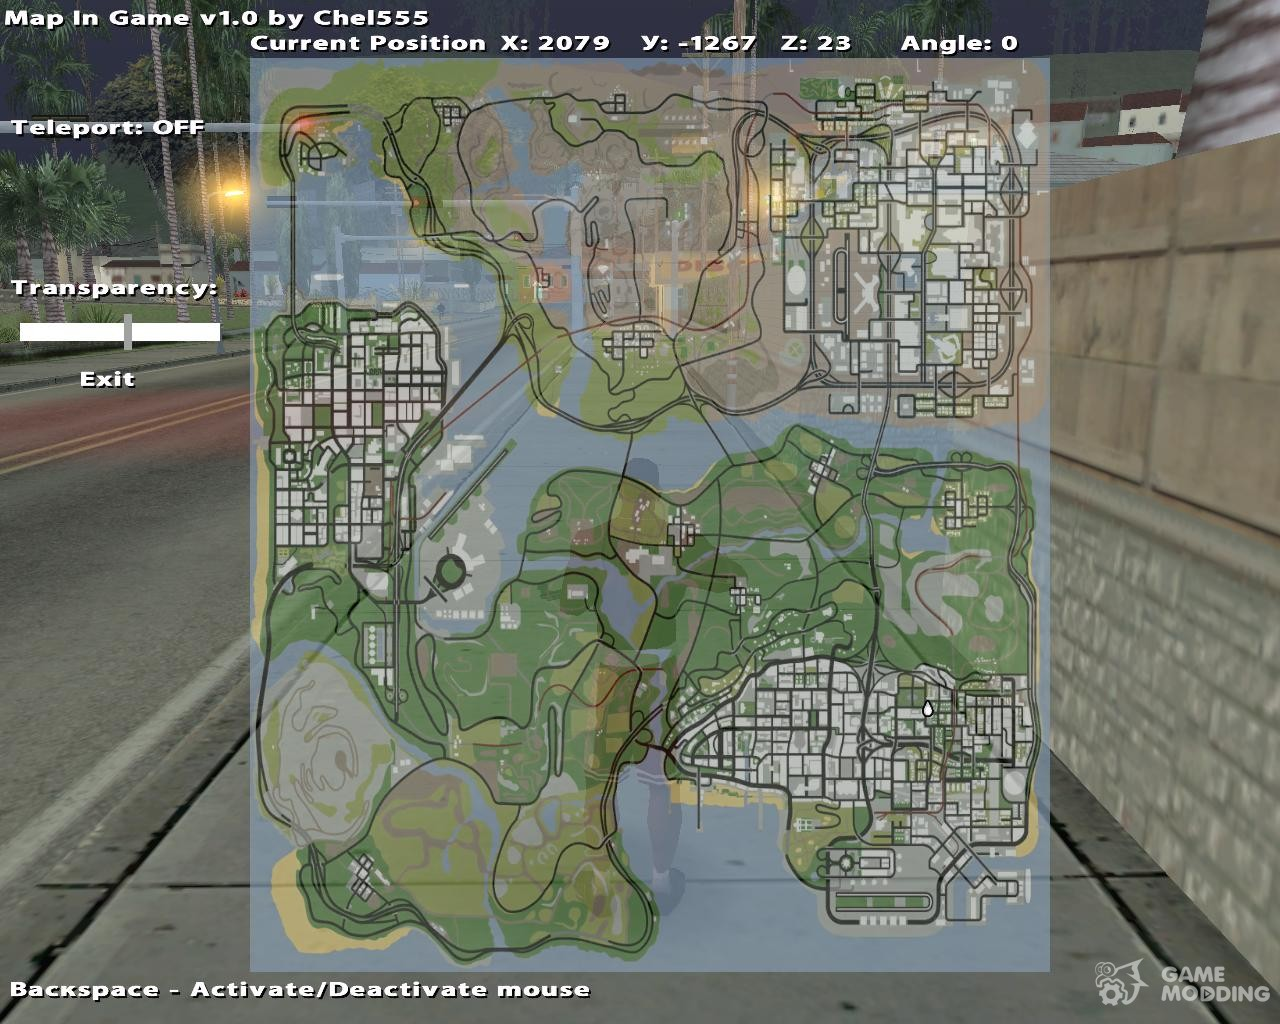 Map in Game v1 for GTA San Andreas San Andreas Map on gta 4 map, vice city map, andreas fault map, san miguel map, west coast fault line map, doom map, san andres map, gta 2 map, san gorgonio map, gta 5 grove street map, san lorenzo valley map, liberty city map, gta 1 map, gta 3 map, calaveras county map, saints row map, gta v map, the golden compass map, city of san antonio map, grand theft auto iv map,